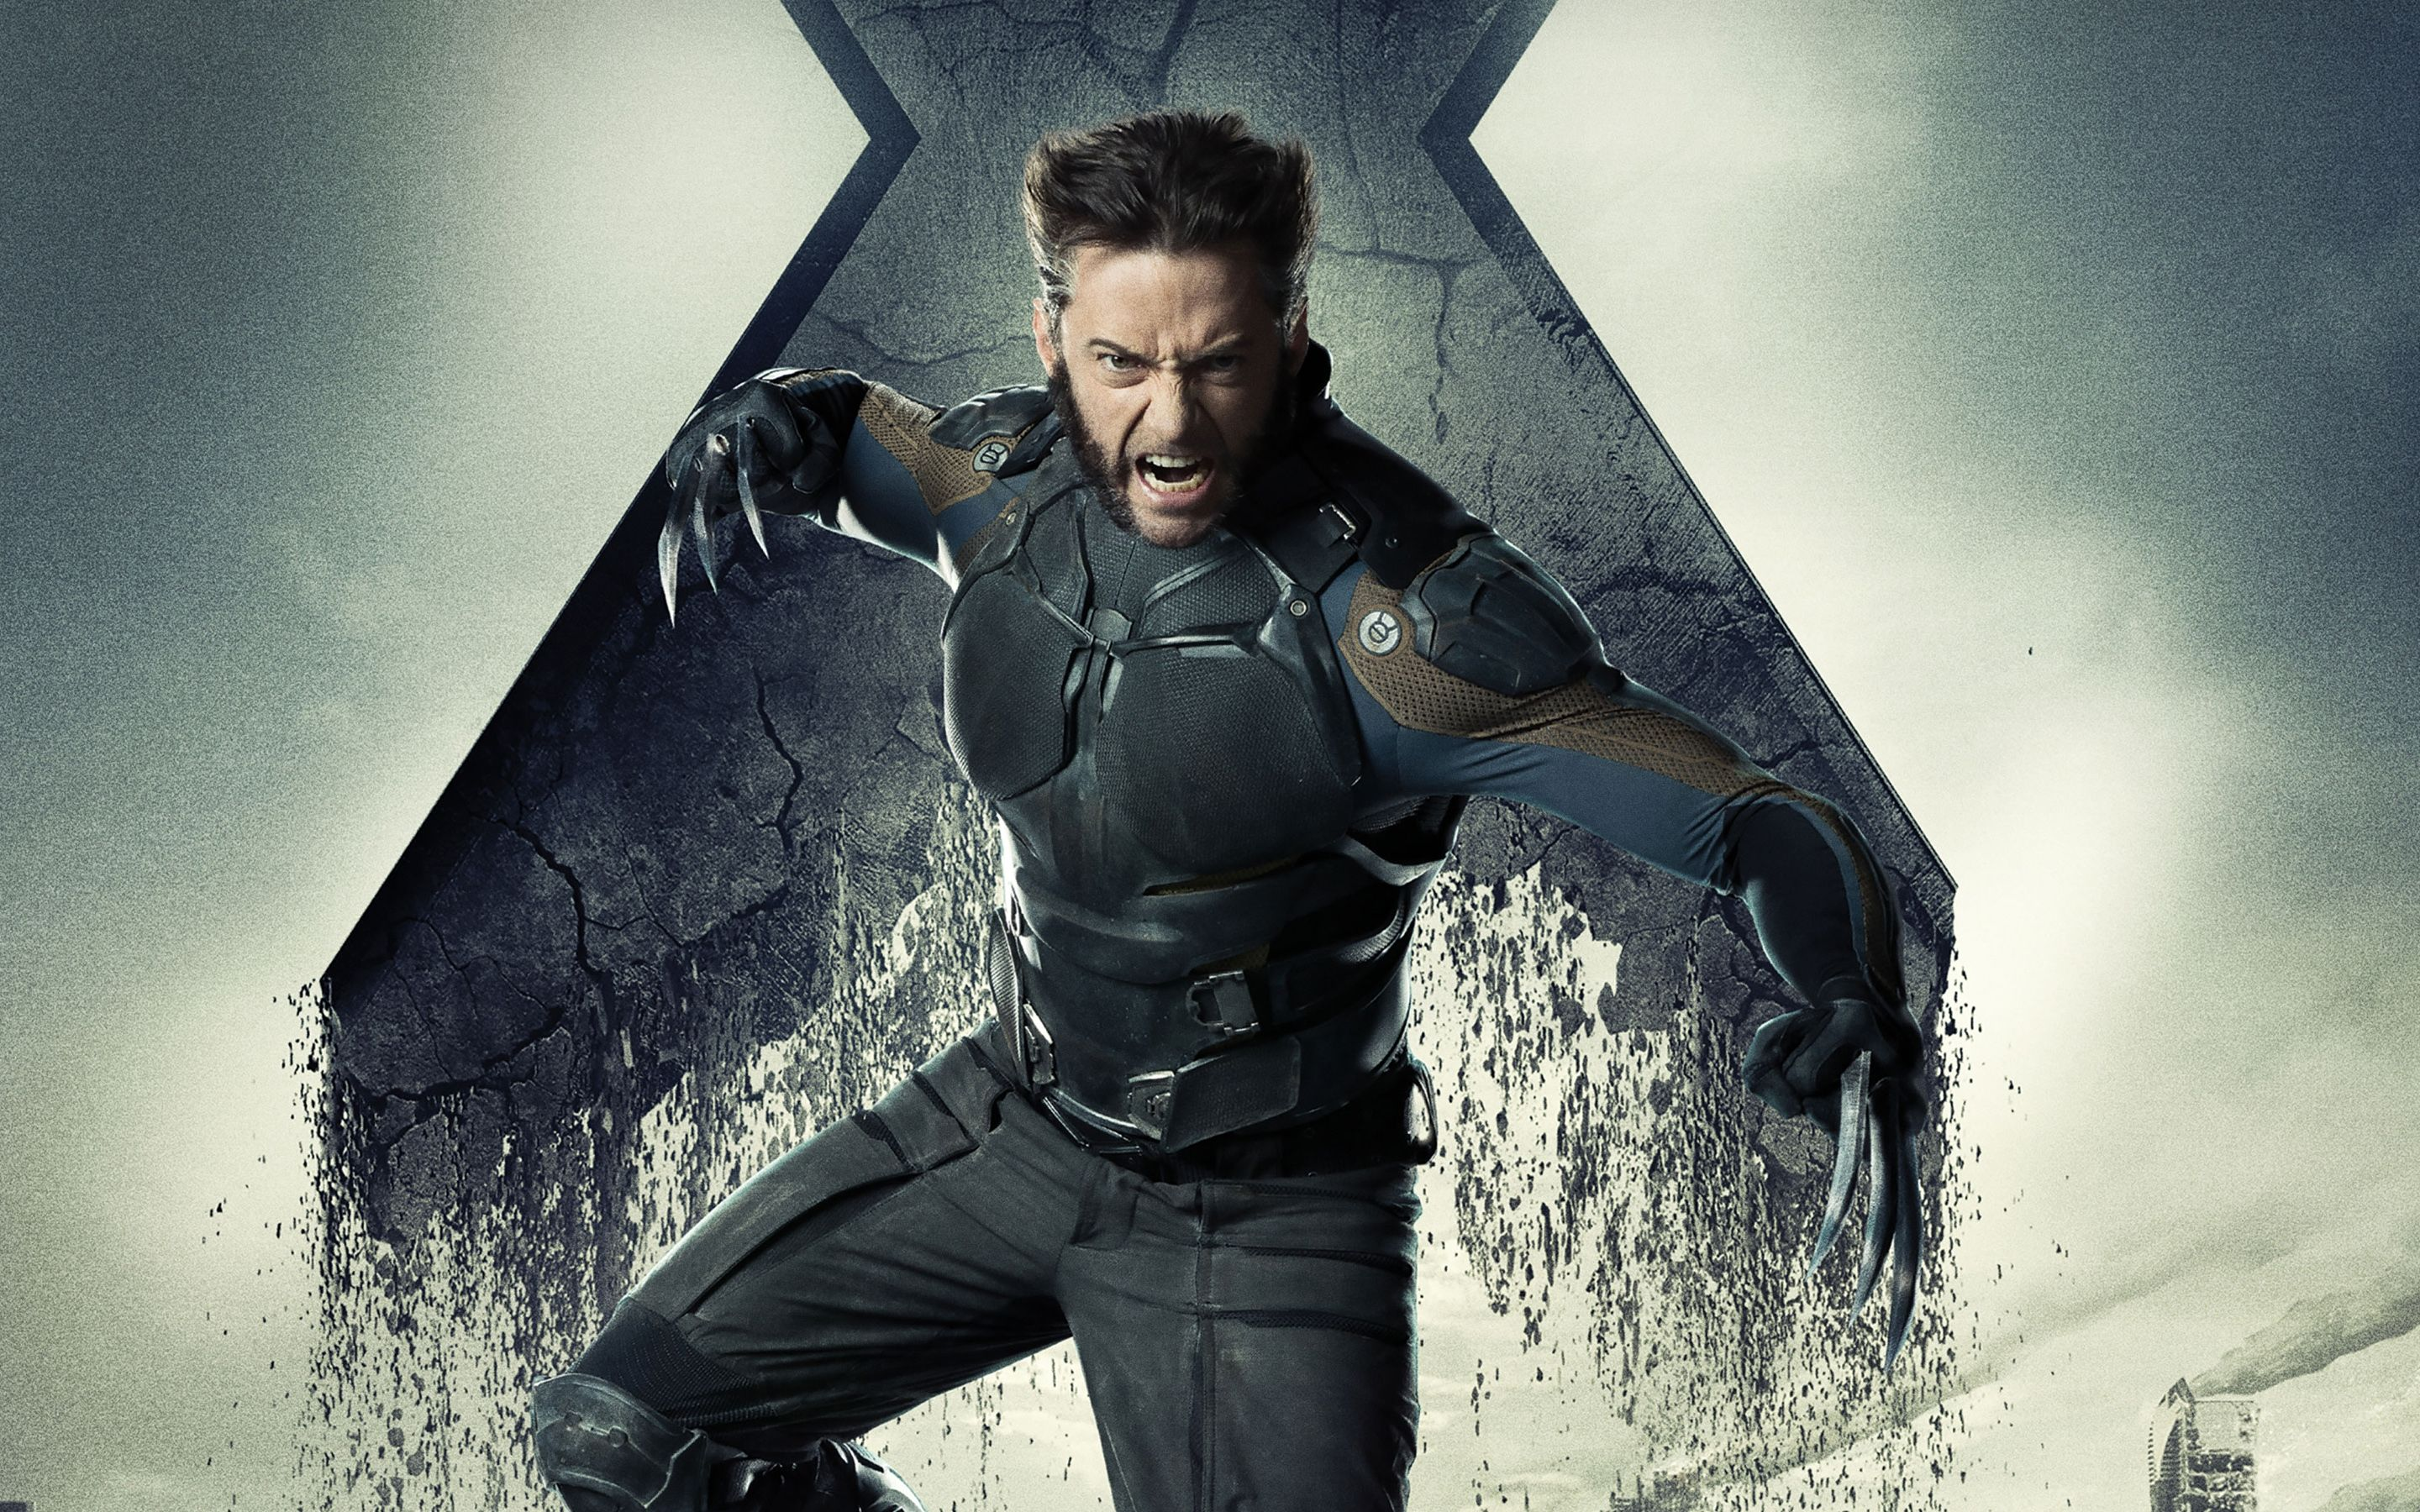 X Men Days Of Future Past Wallpaper 1080p Bv1 X Men Days Of